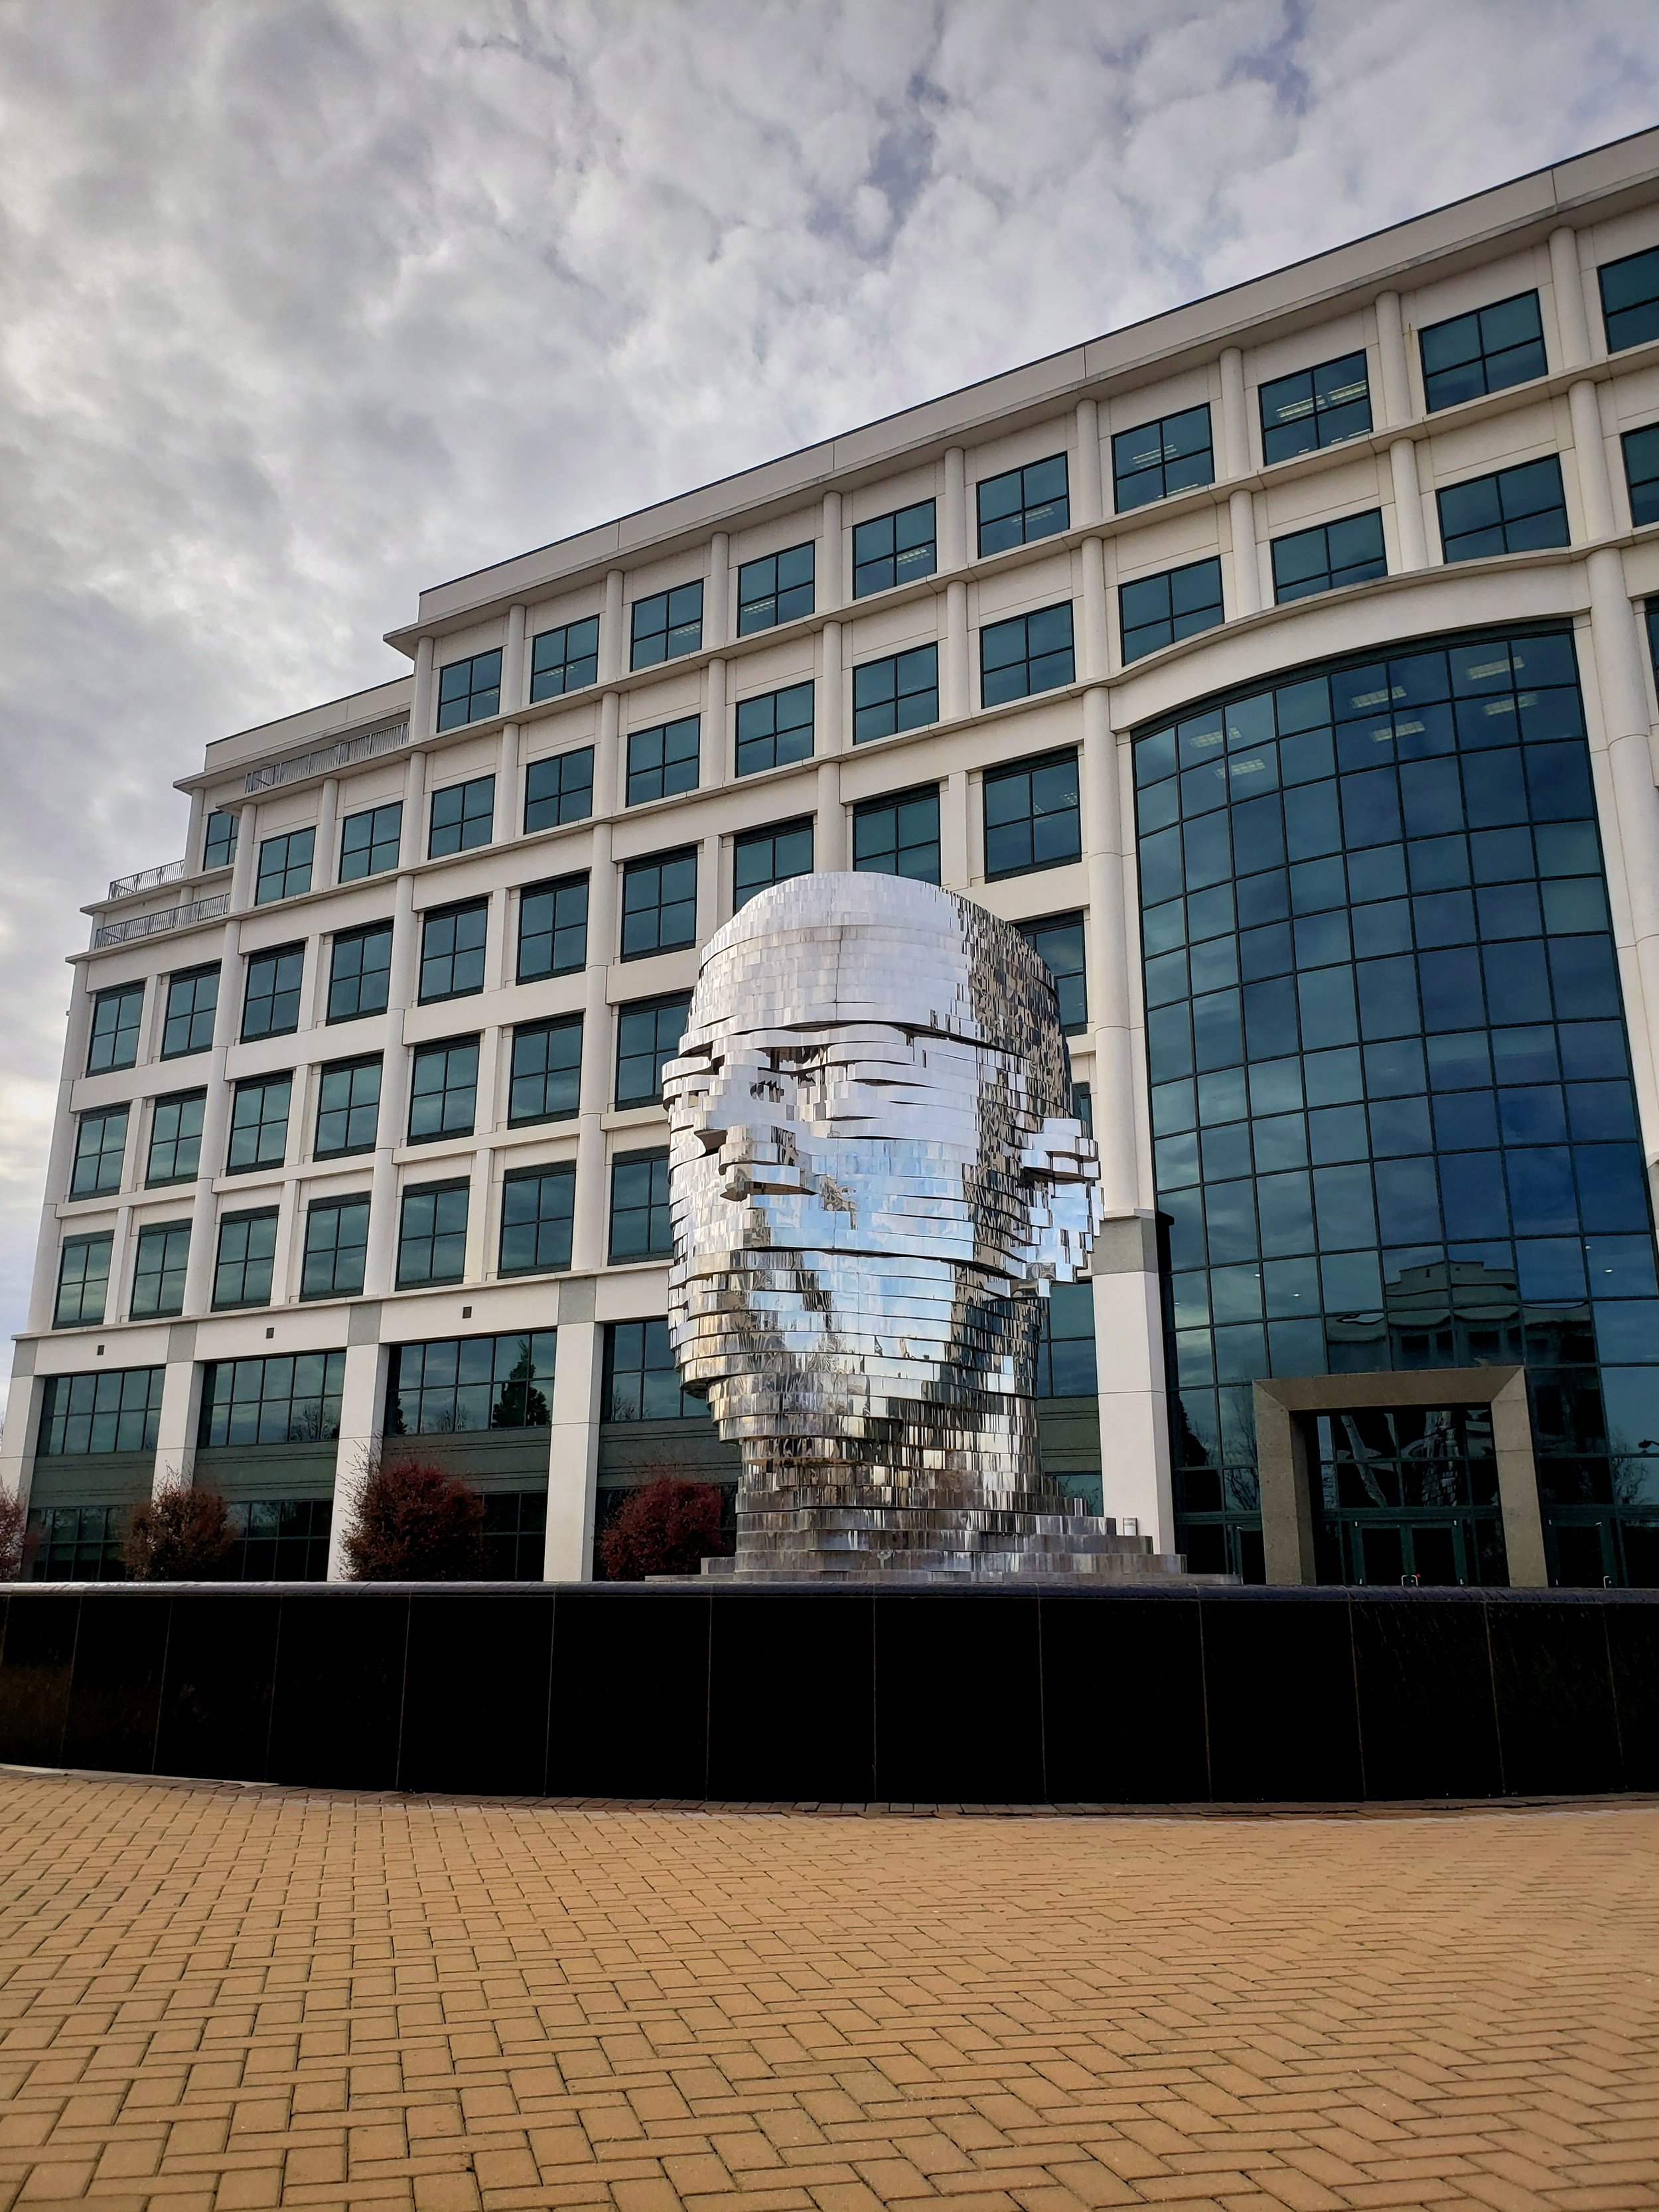 You might feel like you are headed in the wrong direction when looking for Metalmorphosis, because this stunning sculpture is in the middle of a financial park.